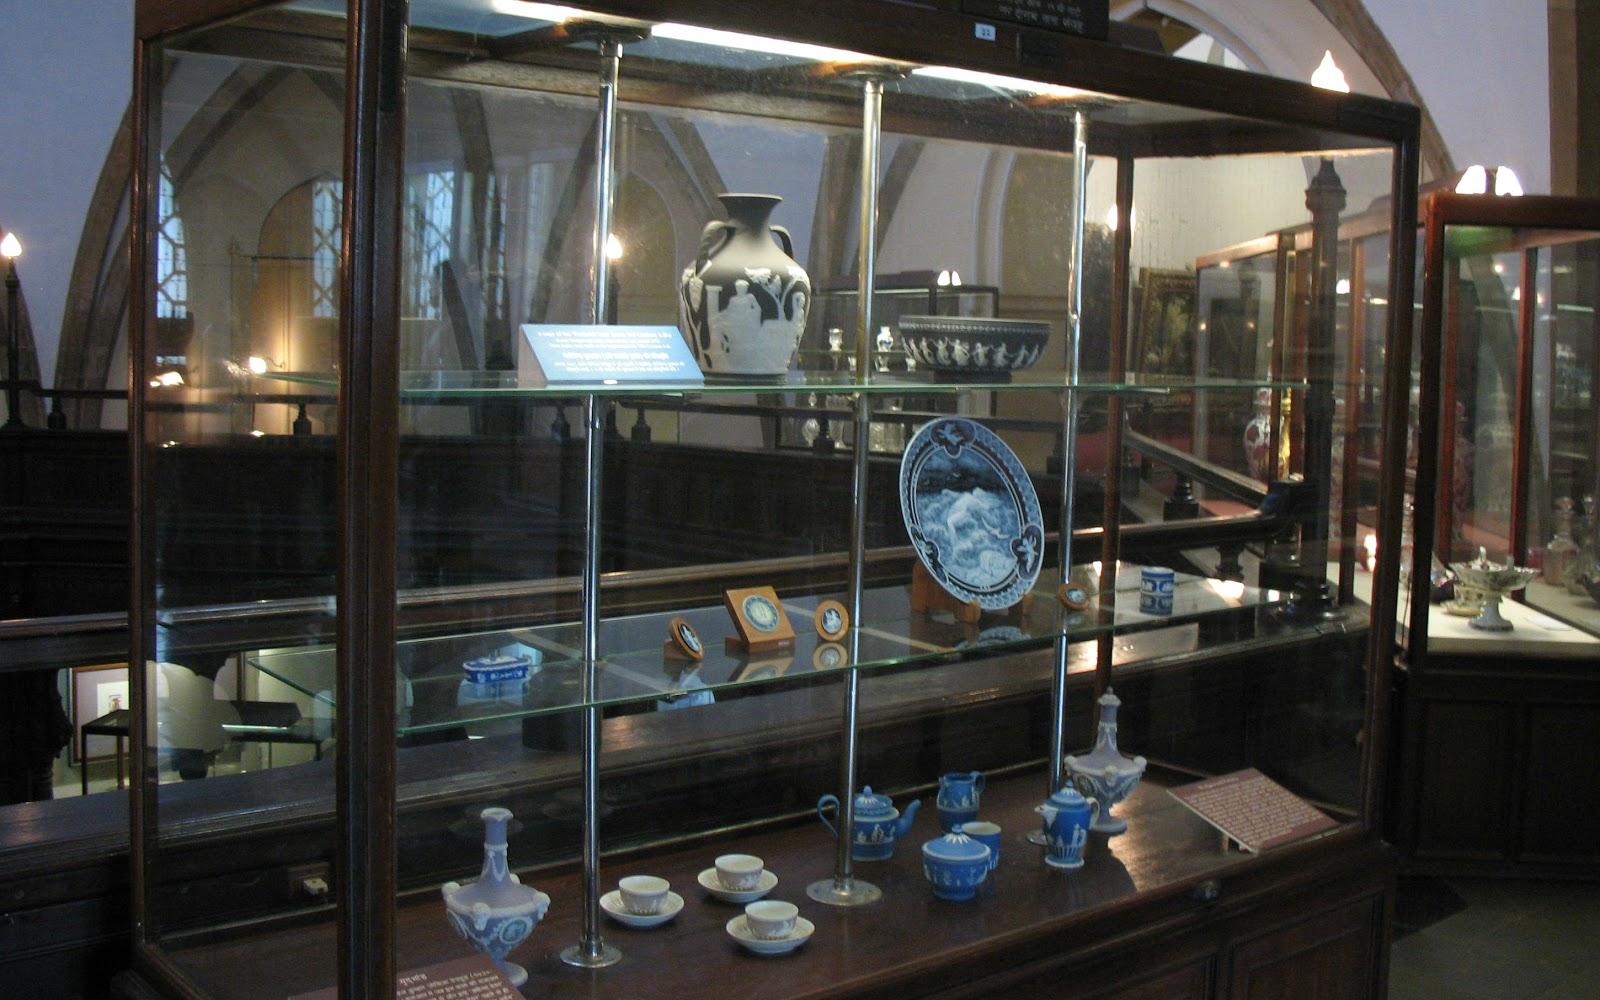 Display case of Wedgwood objects at Chhatrapati Shivaji Maharaj Vastu Sangrahalaya (CSMVS) Museum in Mumbai, India